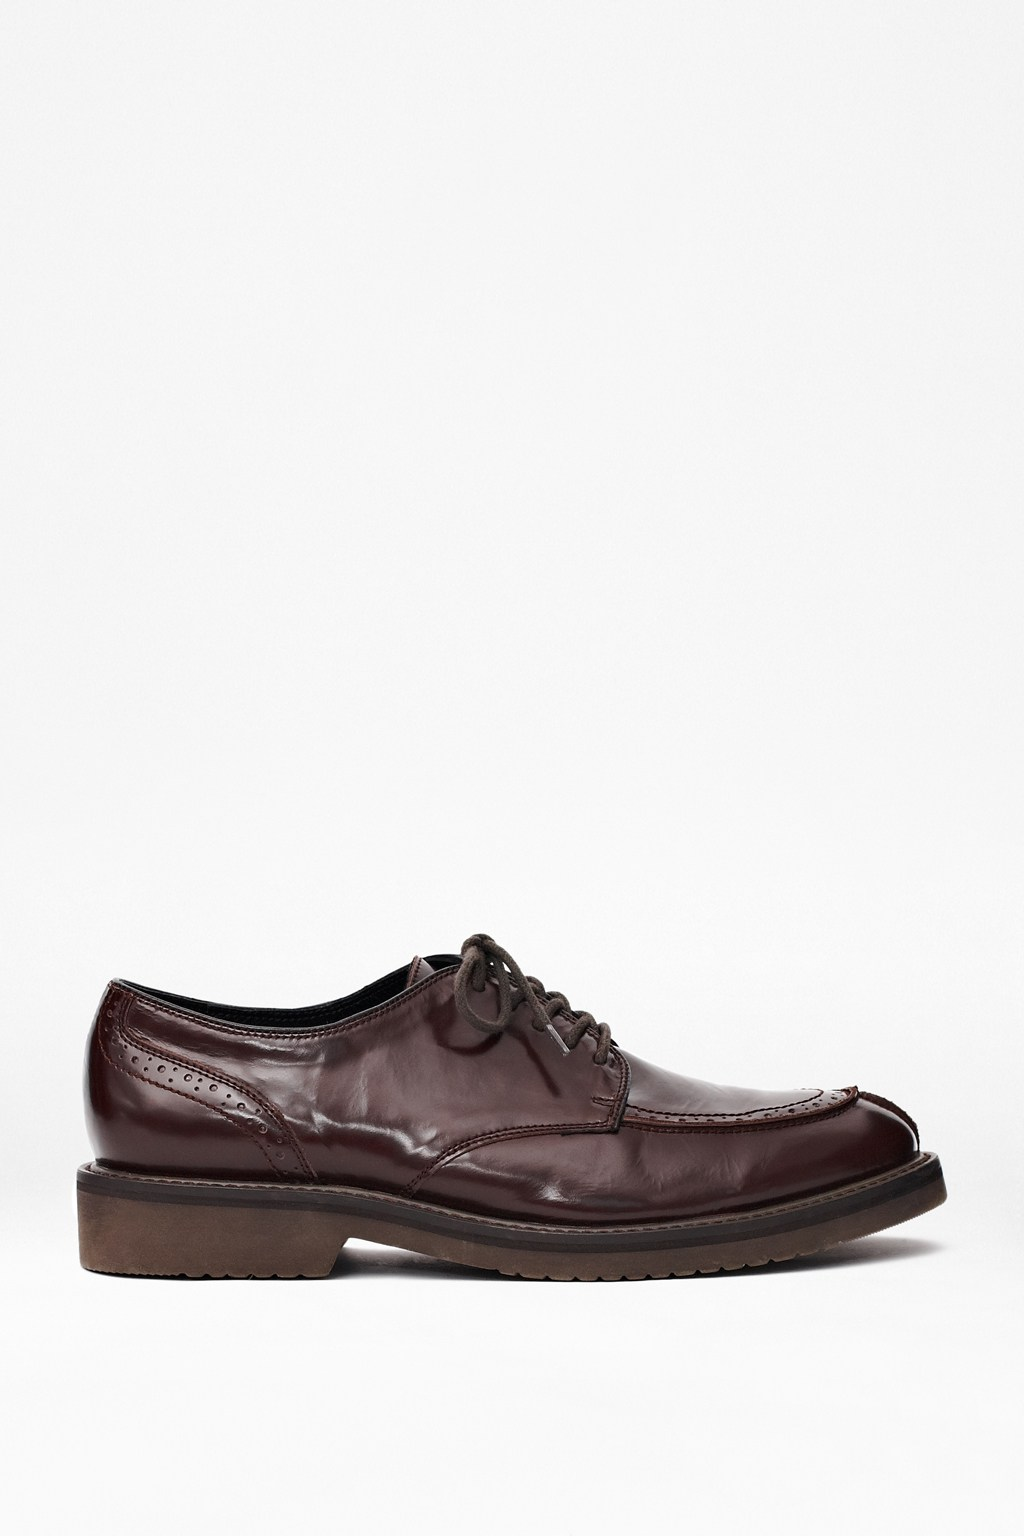 Daley Studded Laced Oxford Shoes : Man Old Season : French Connection